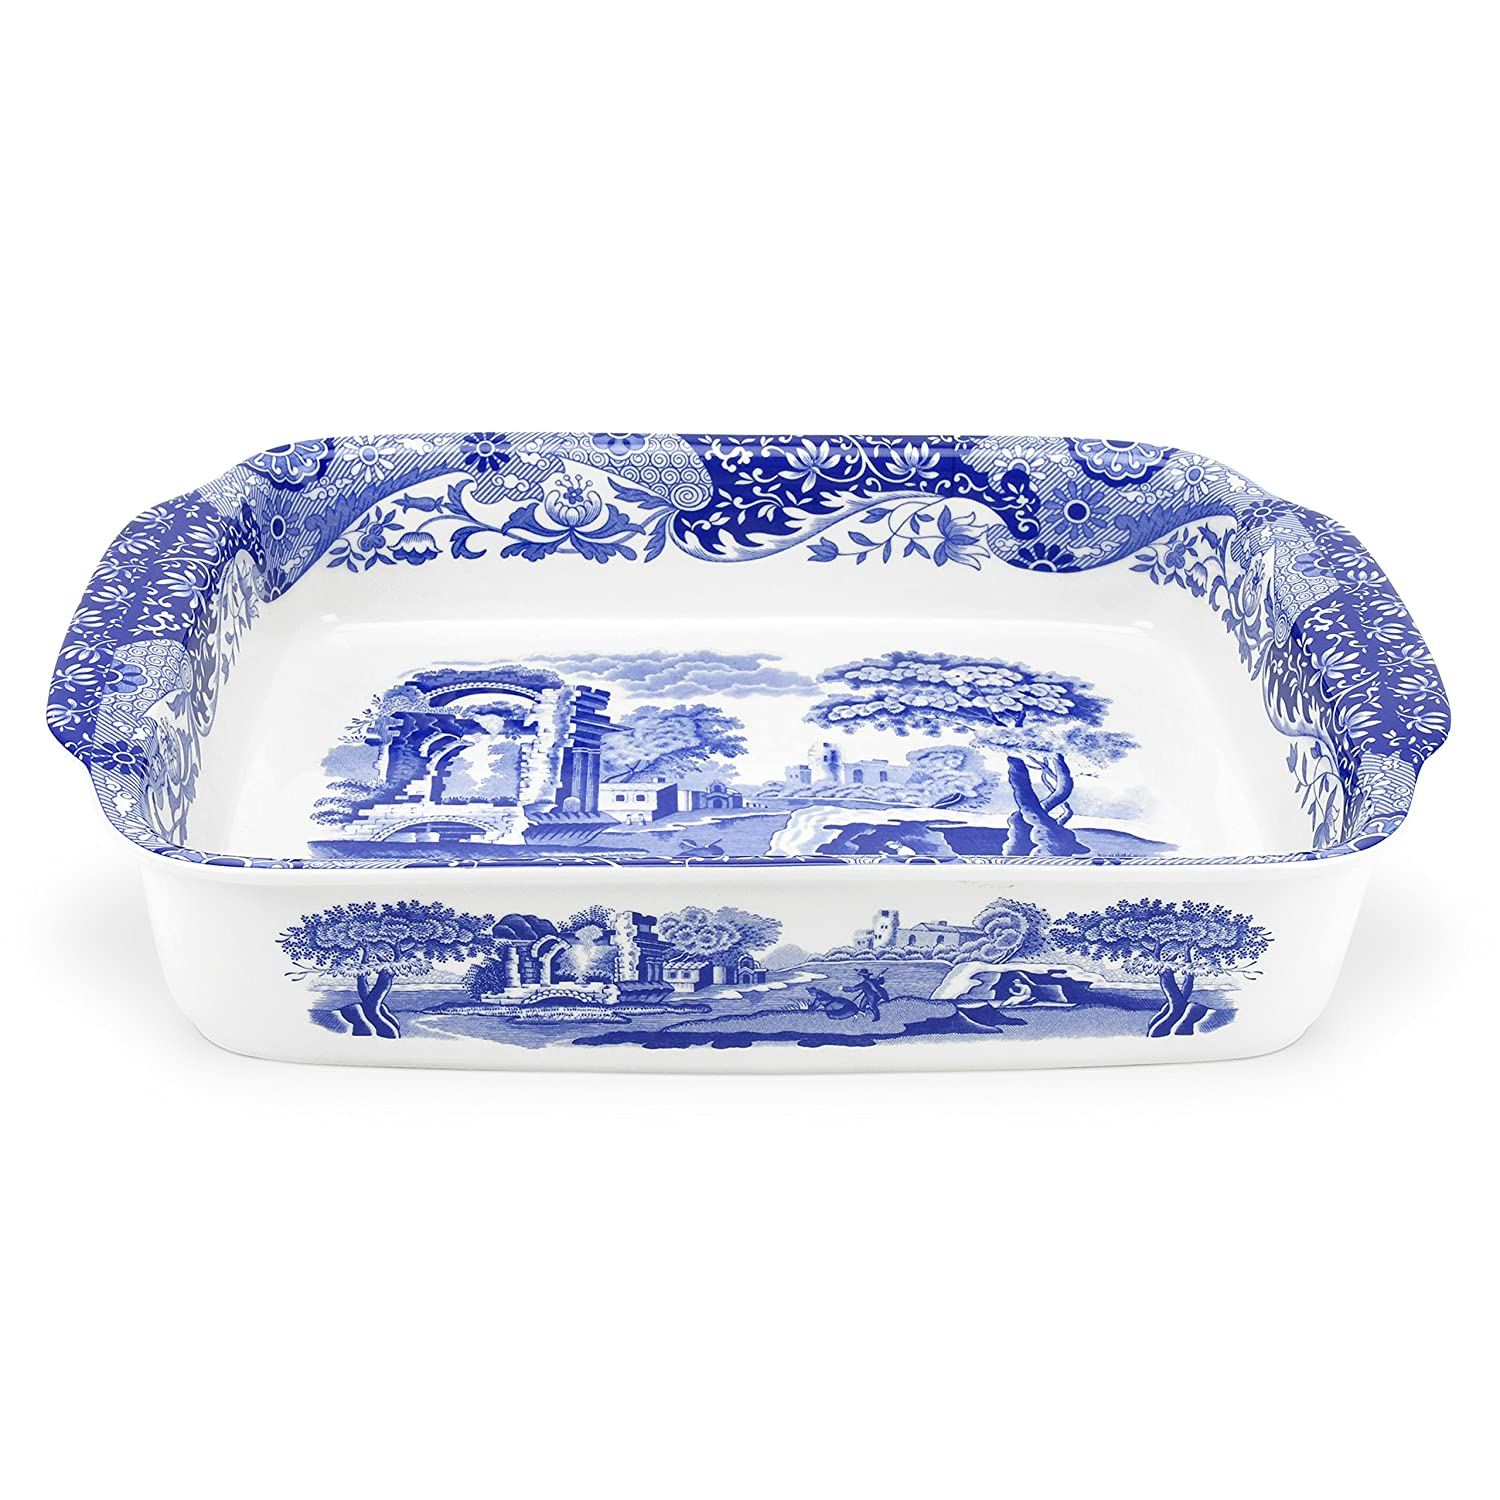 Spode Blue Italian Rectangle Handled Dish Large Royal Worcester 1635915